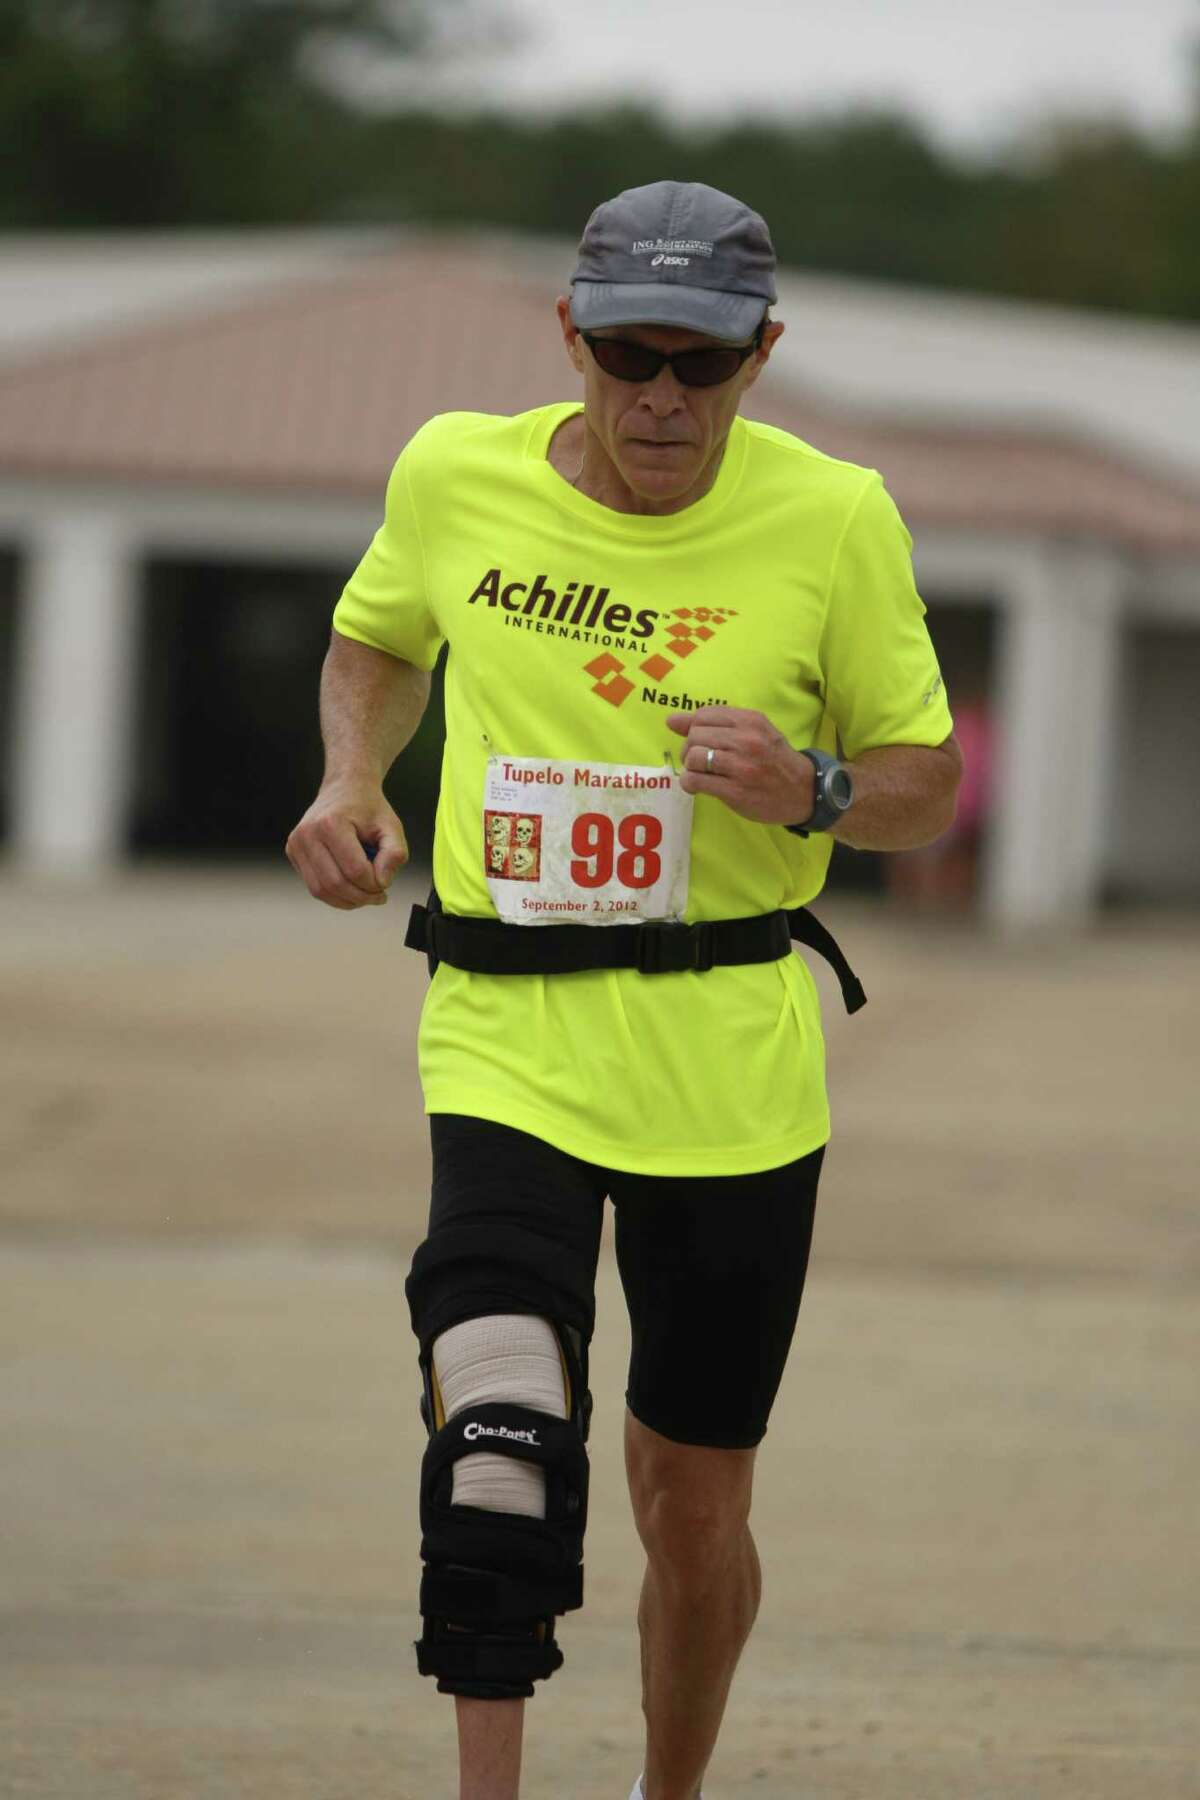 Tony Grassi, a 52-year-old marathon runner who is a member of Achilles International, a nonprofit organization that helps disabled athletes compete in mainstream events, runs in the September 2011 Tupelo Marathon. Grassi lives in Chattanooga, Tenn. Grassi has congenital fibular hemimelia, or no fibula bone in his right leg, the same condition as that of South African sprinter Oscar Pistorius, who participated in the Olympic Games earlier this year, running on carbon-fiber prosthetics. (Pistorius? legs were amputated when he was 11 months old).